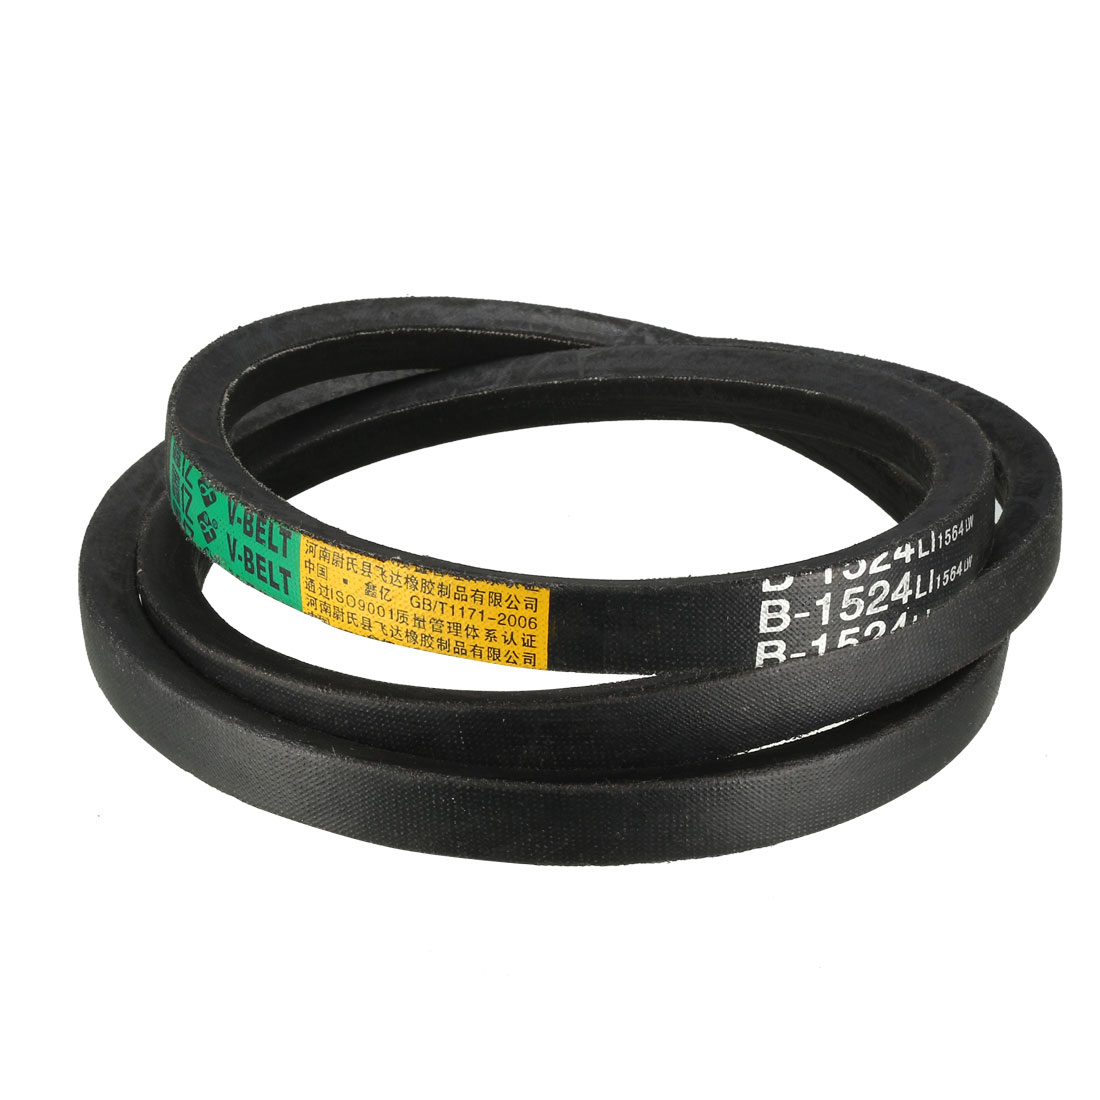 Uxcell B54-B76 Drive V-Belt Inner Girth 54 Inch-76 Inch Industrial Power Rubber Transmission Belt